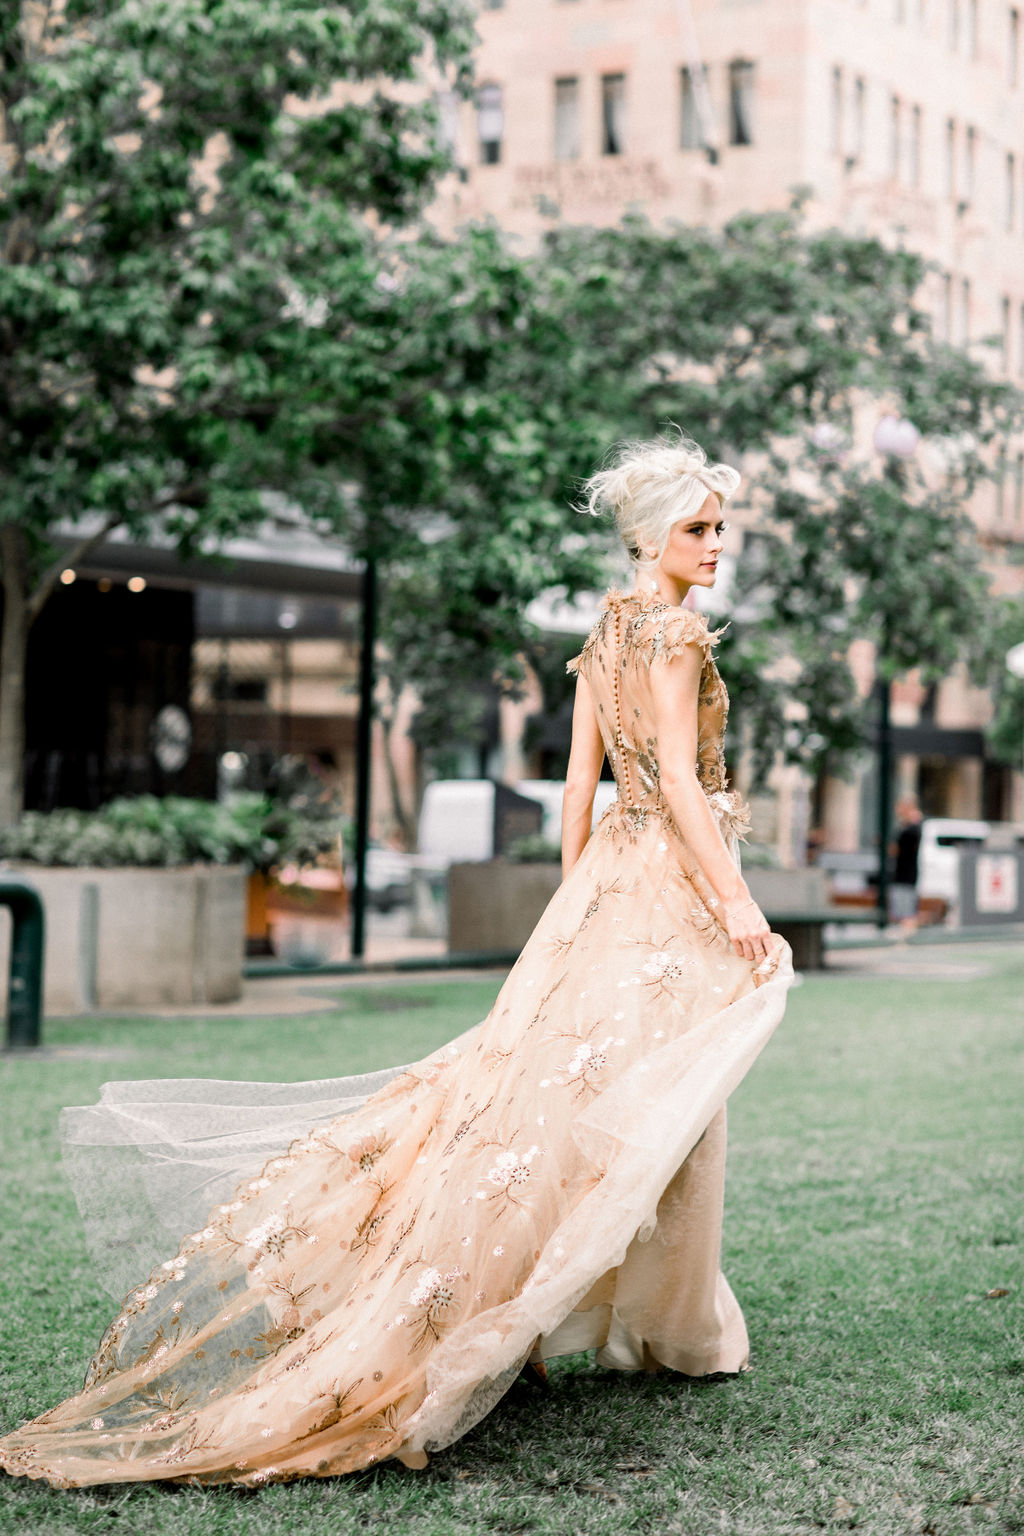 white+white weddings and events the wedding school styled shoot isles lane bride gold wedding dress outdoor ceremony